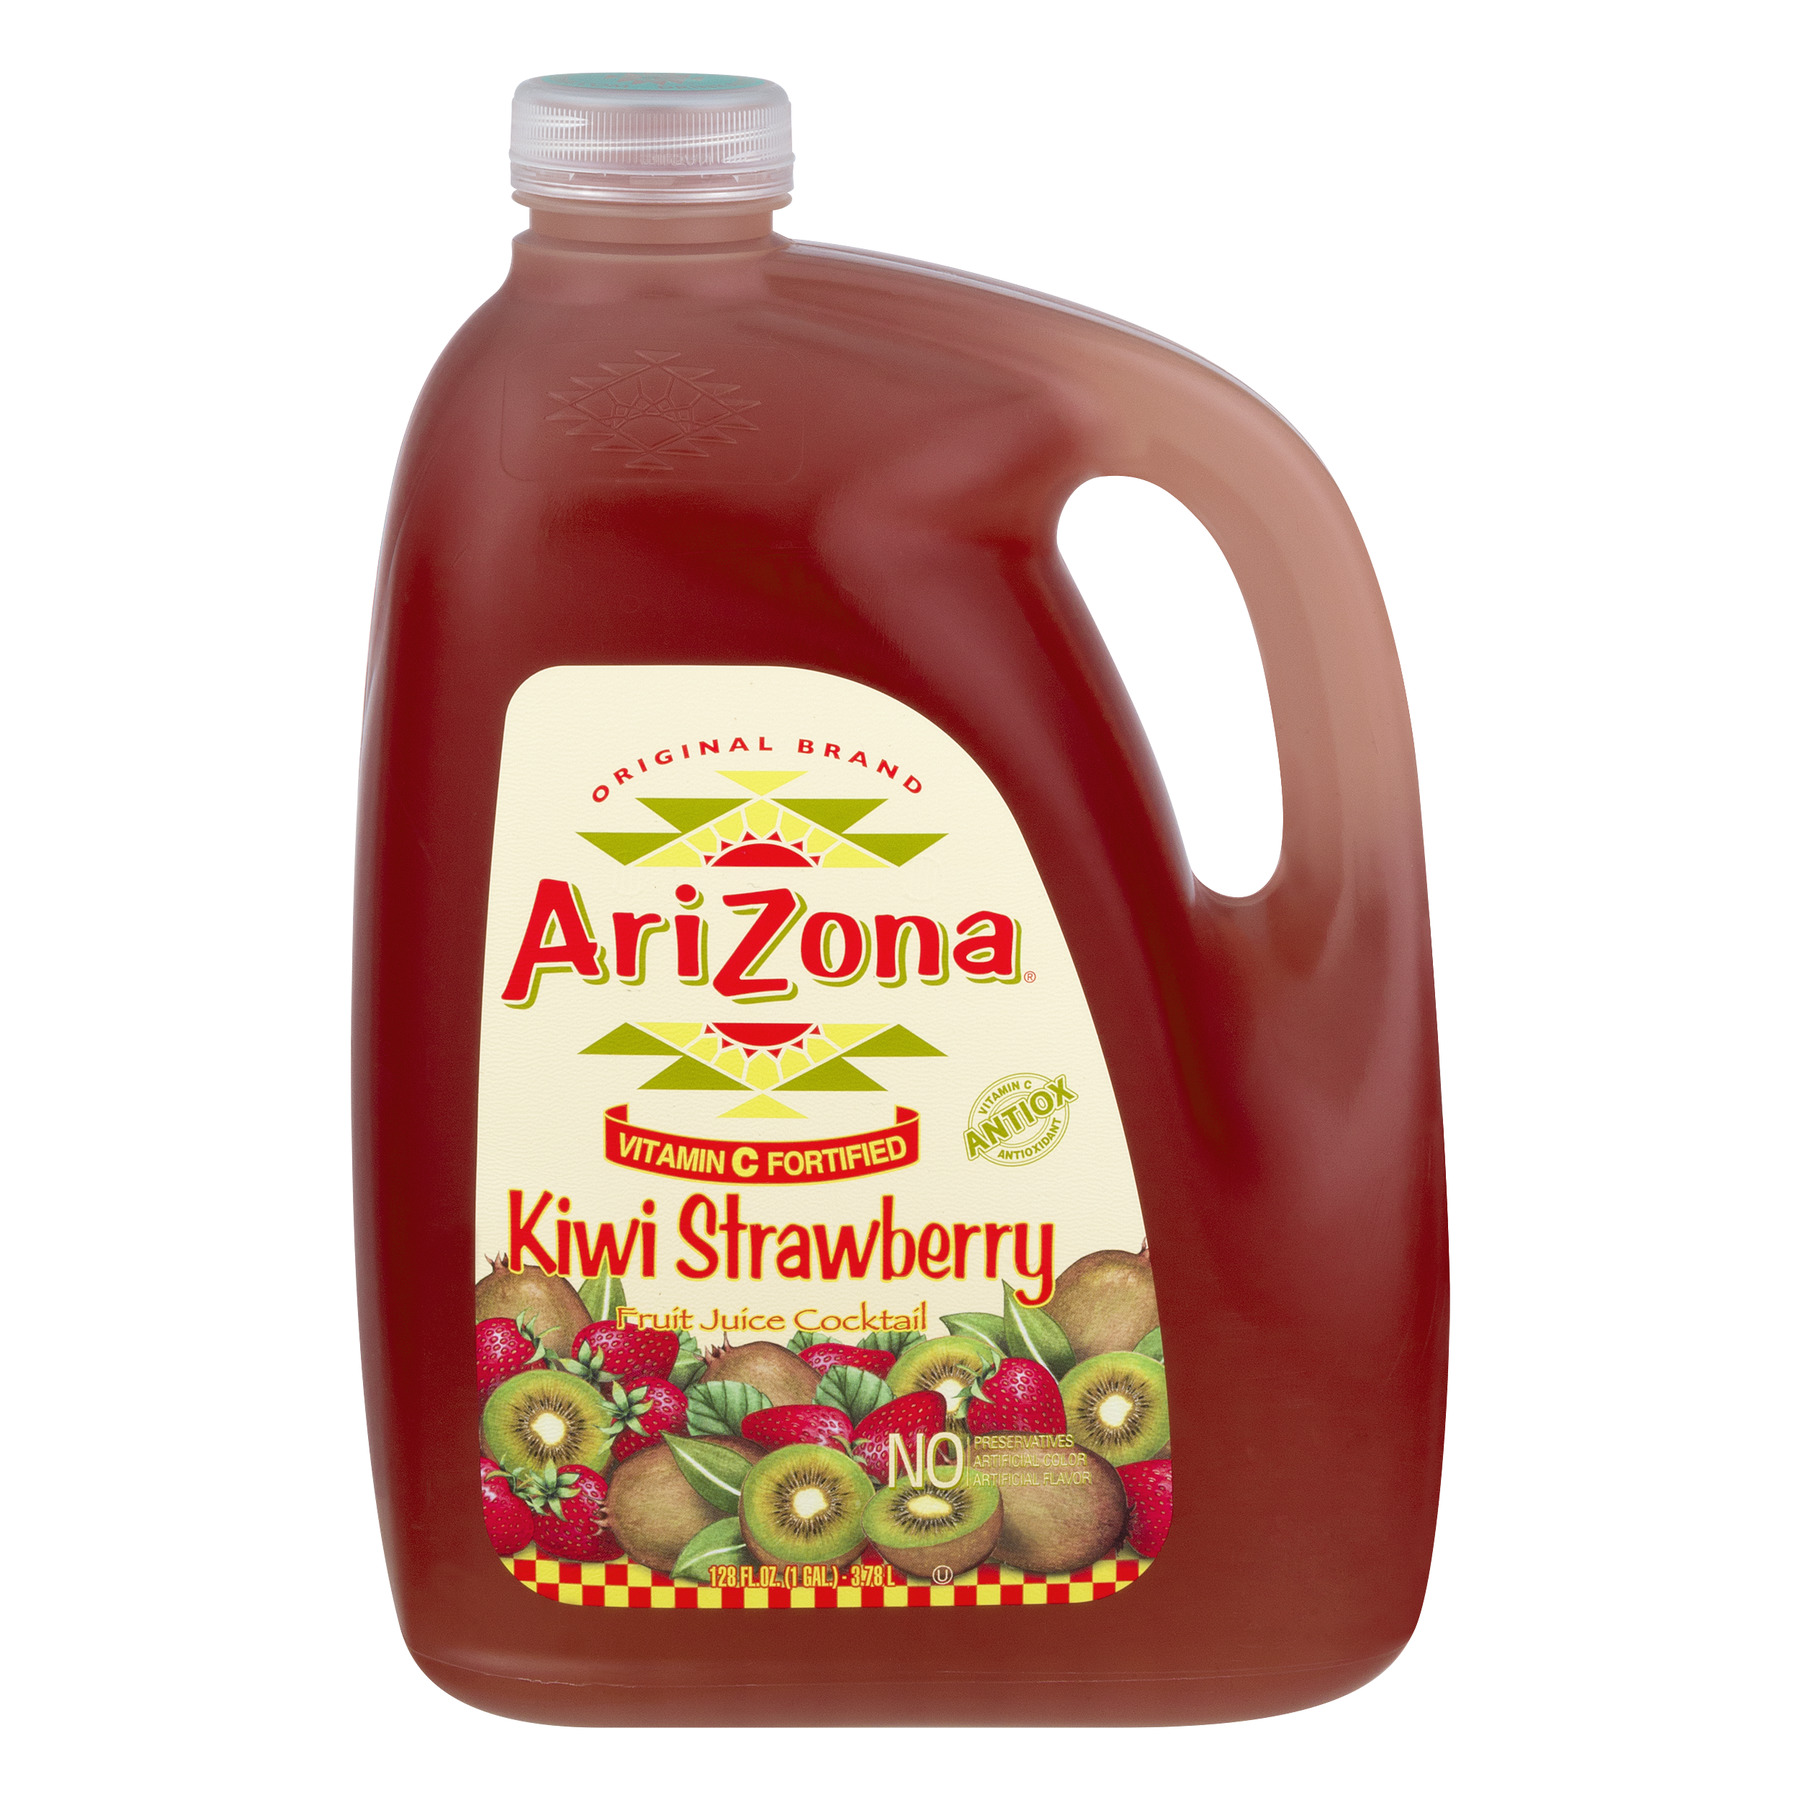 Arizona Juice Cocktail, Kiwi Strawberry, 128 Fl Oz, 1 Count